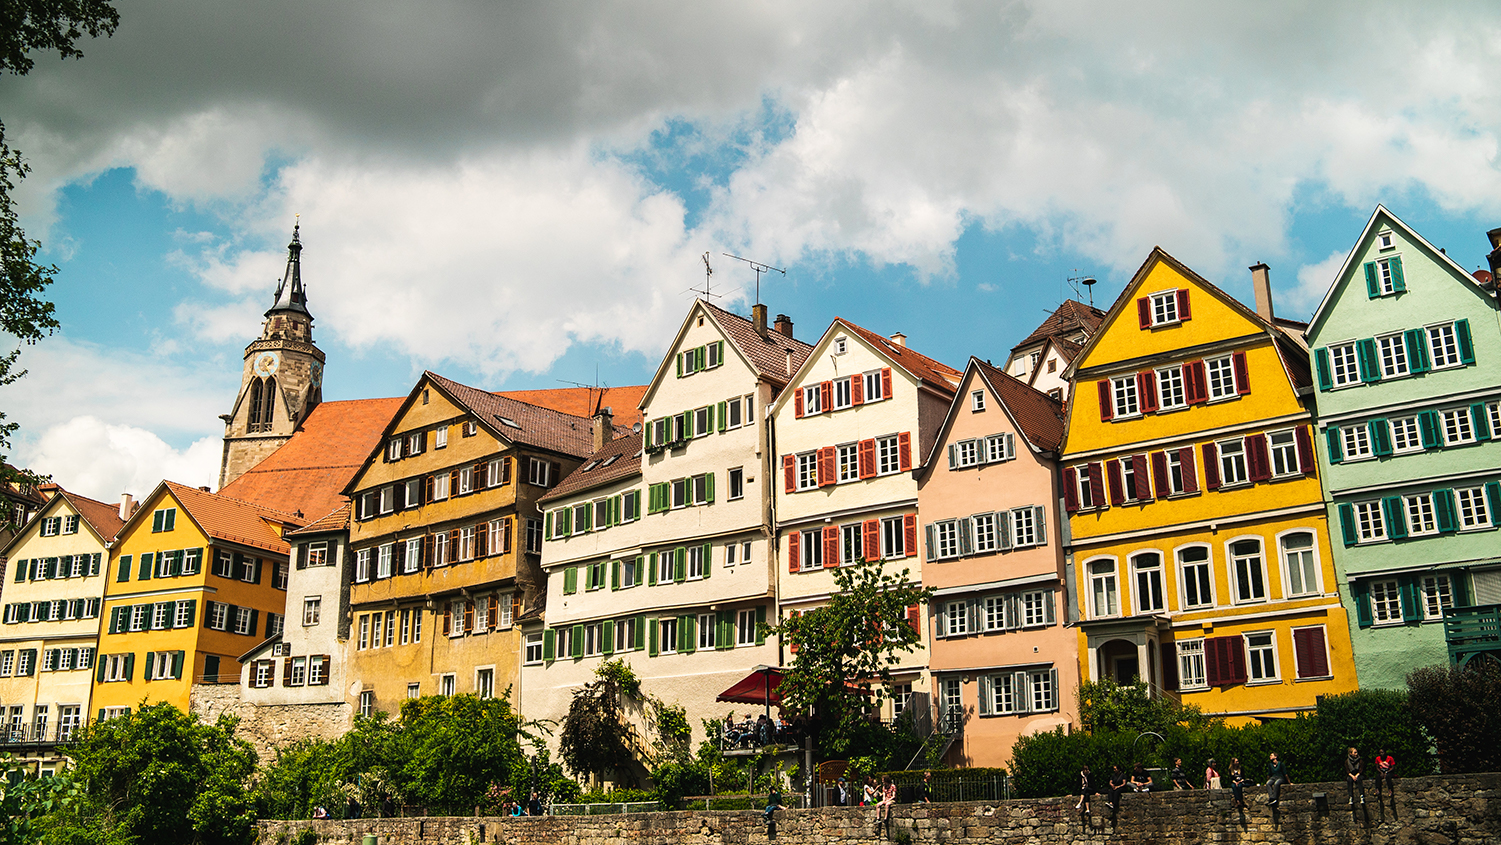 A row of European-style houses on a river